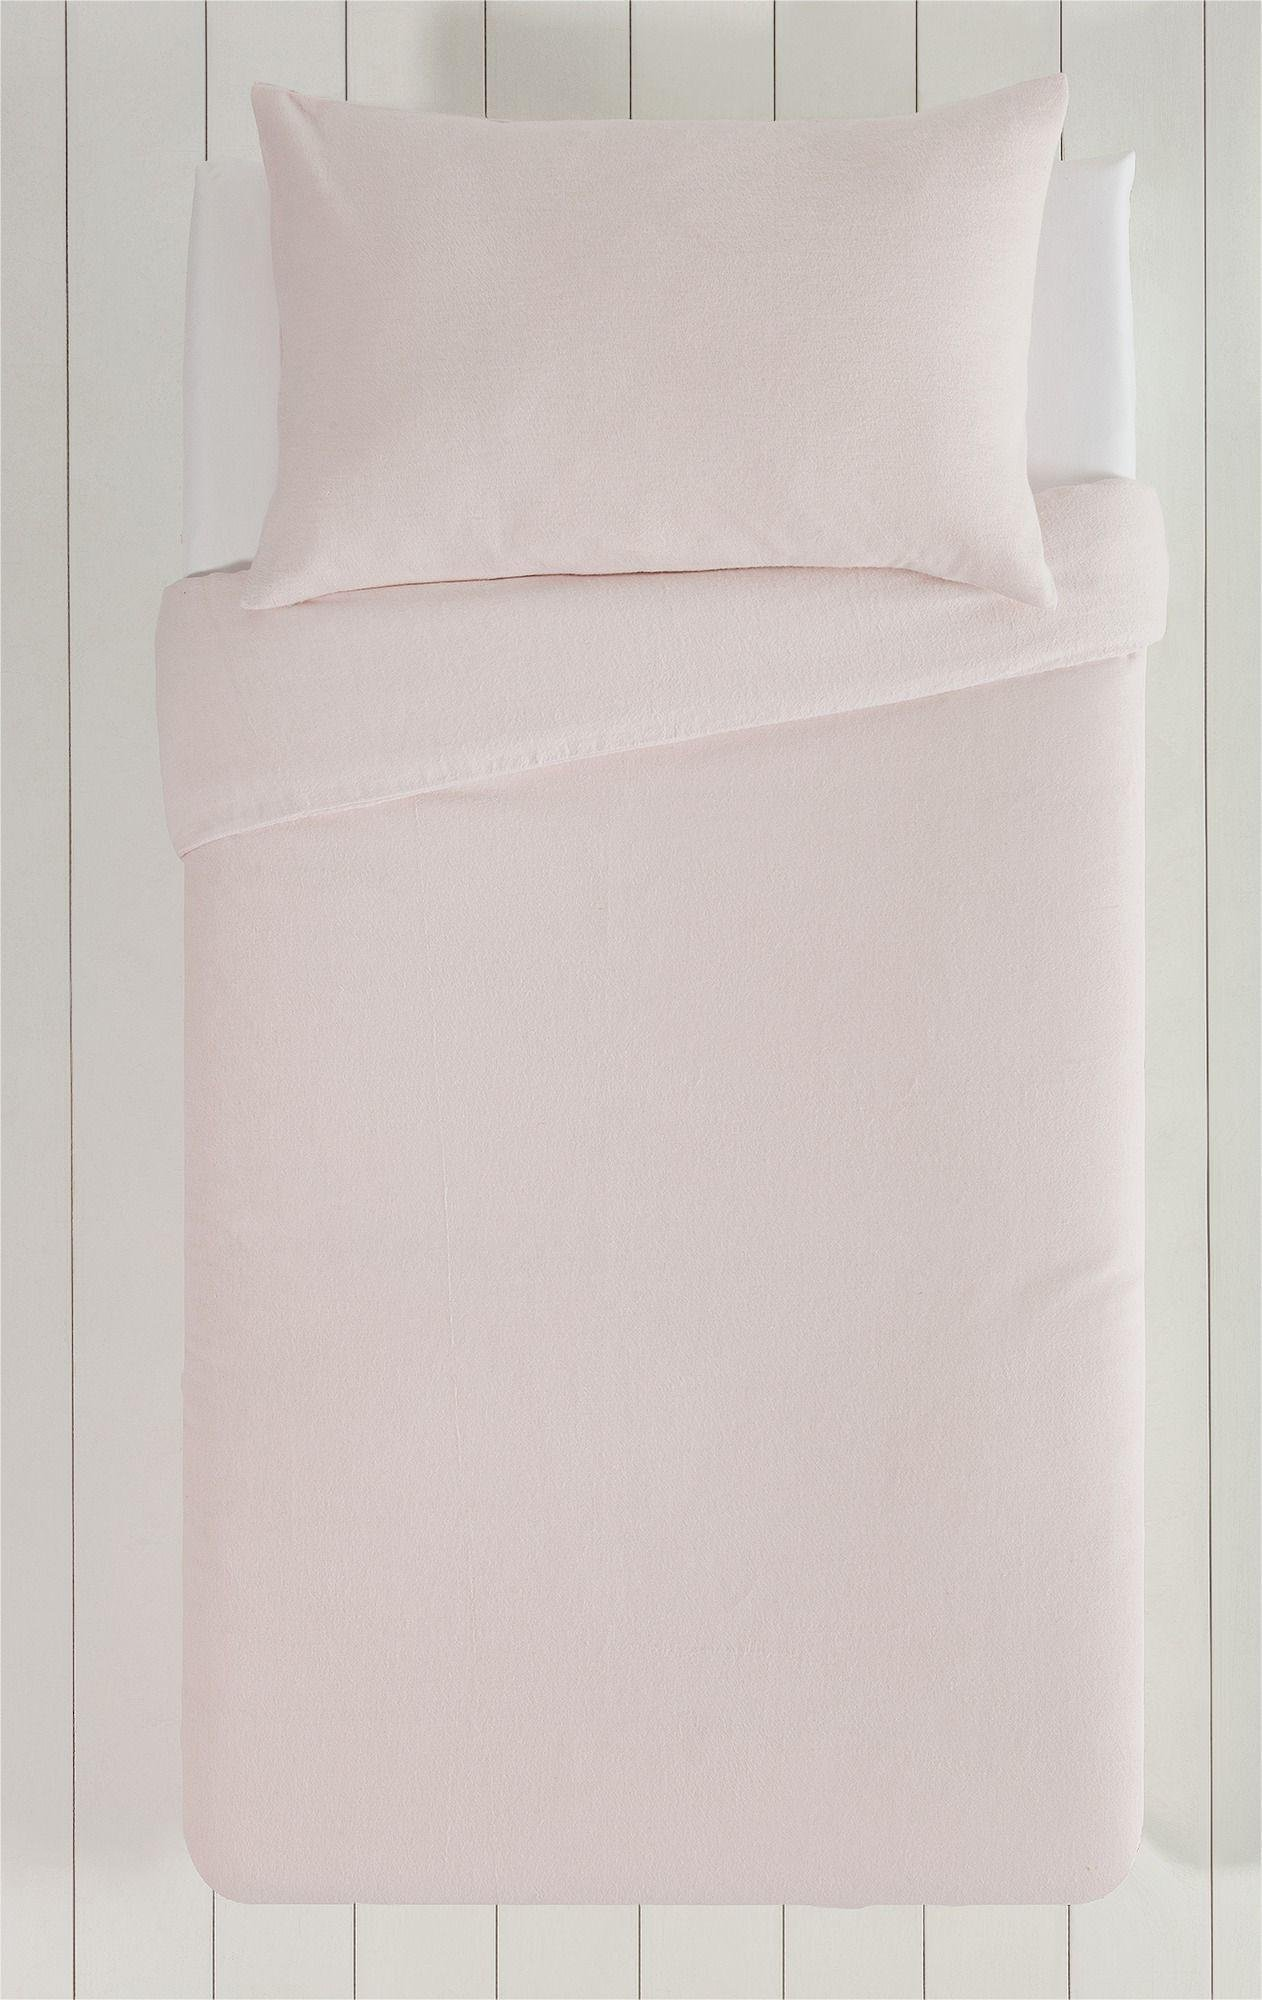 Collection - Pink Brushed - Cotton - Bedding Set - Toddler